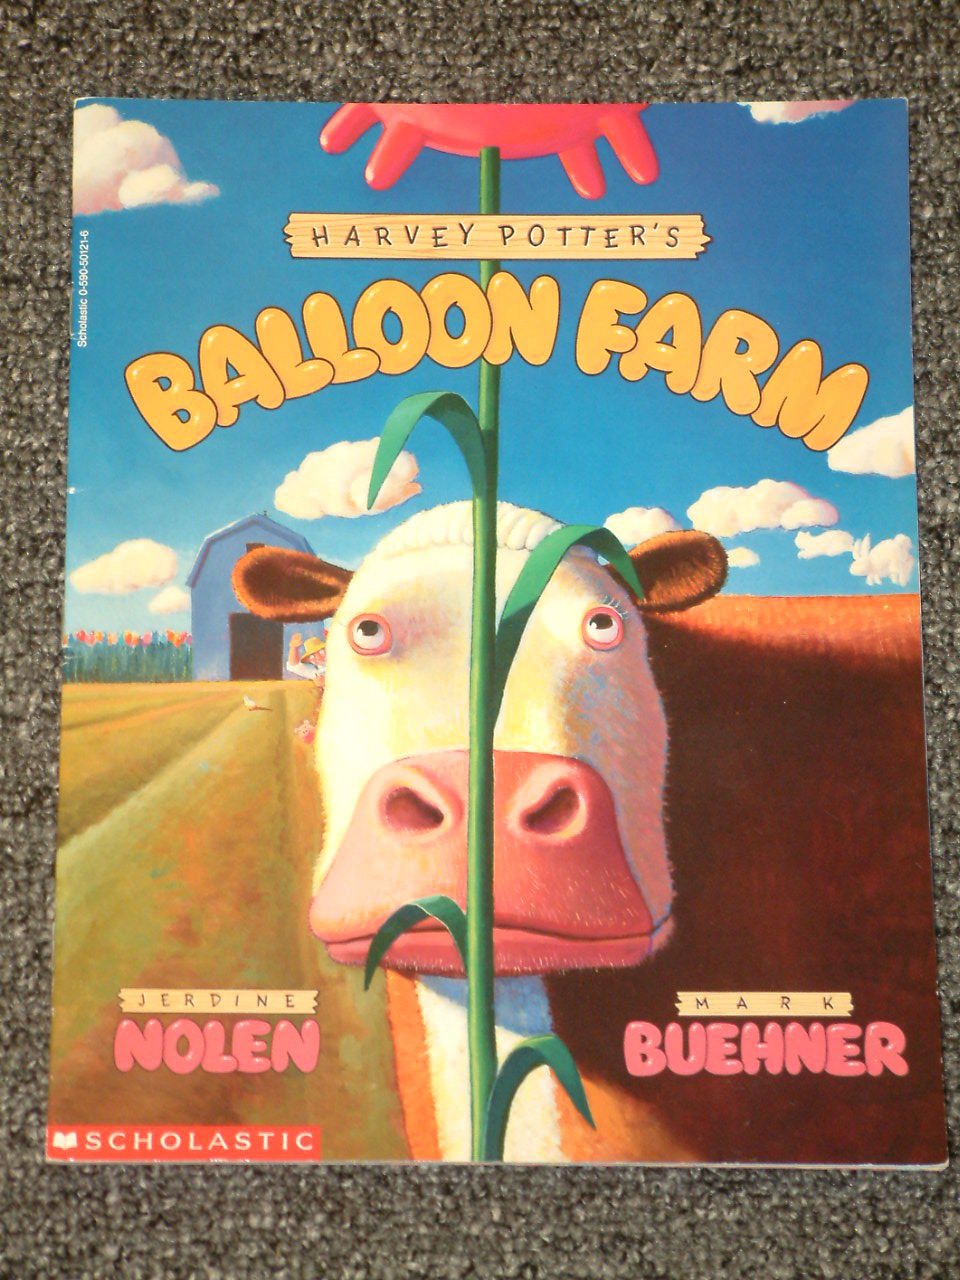 Harvey Potter's Balloon Farm by Jerdine Nolen and Mark Buehner